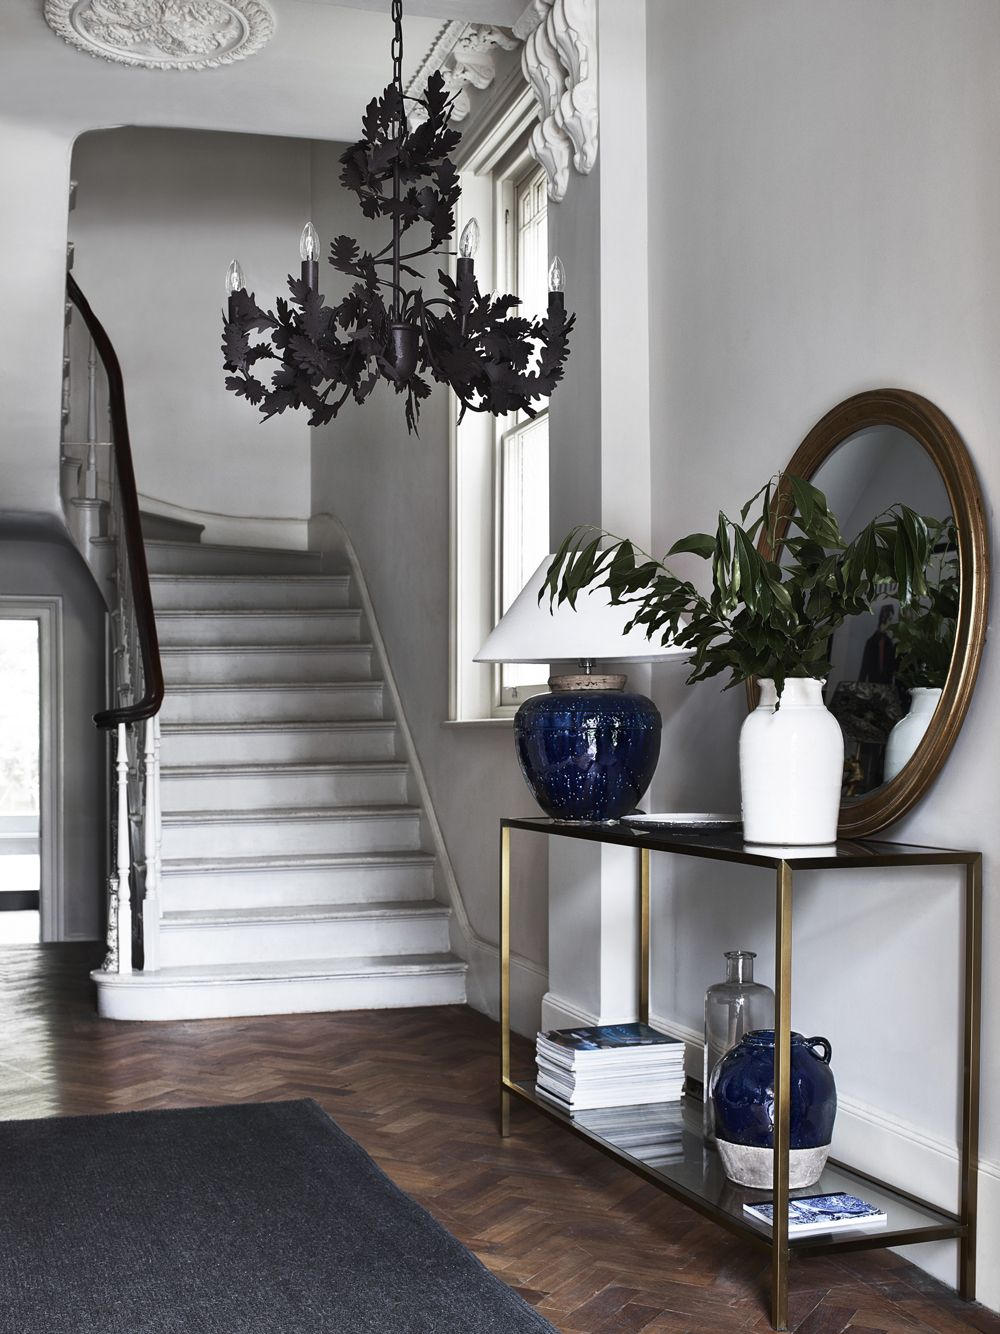 Some Changes And 50 Favorites For Friday Hallway Designs Interior Design Inspiration Home Decor